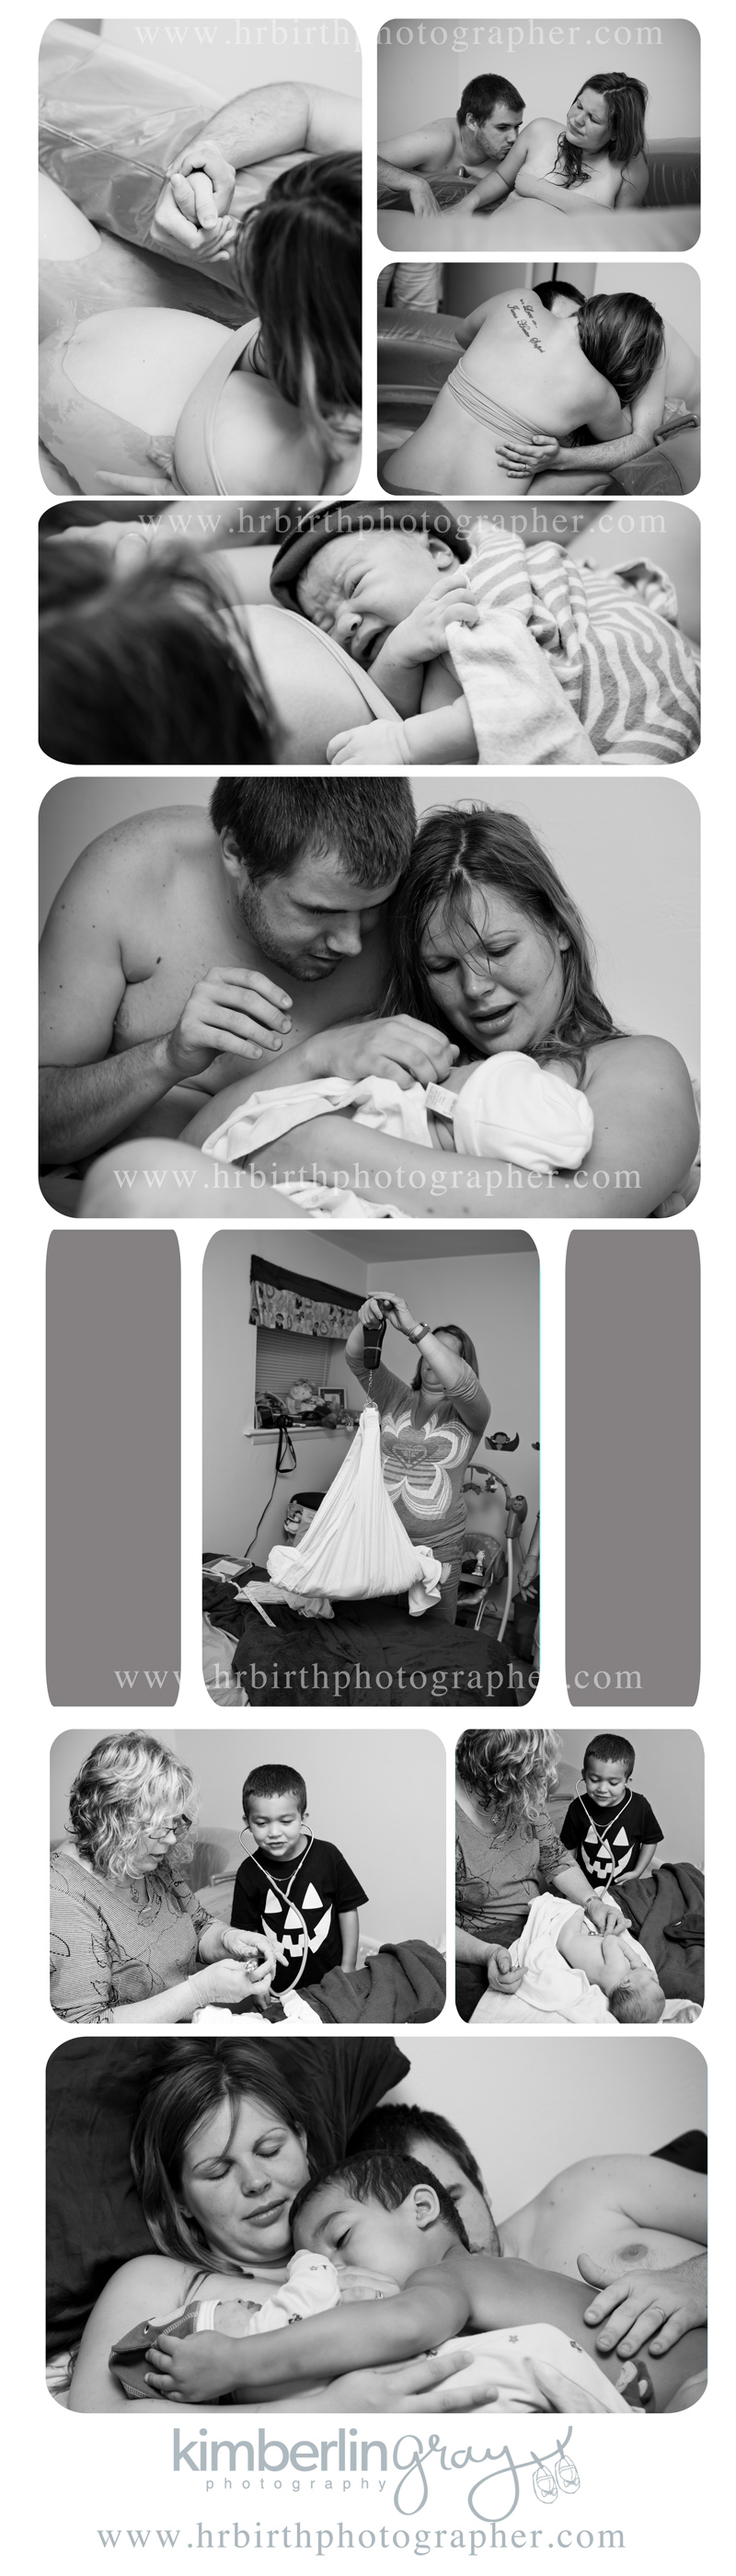 birth photography, home birth collage